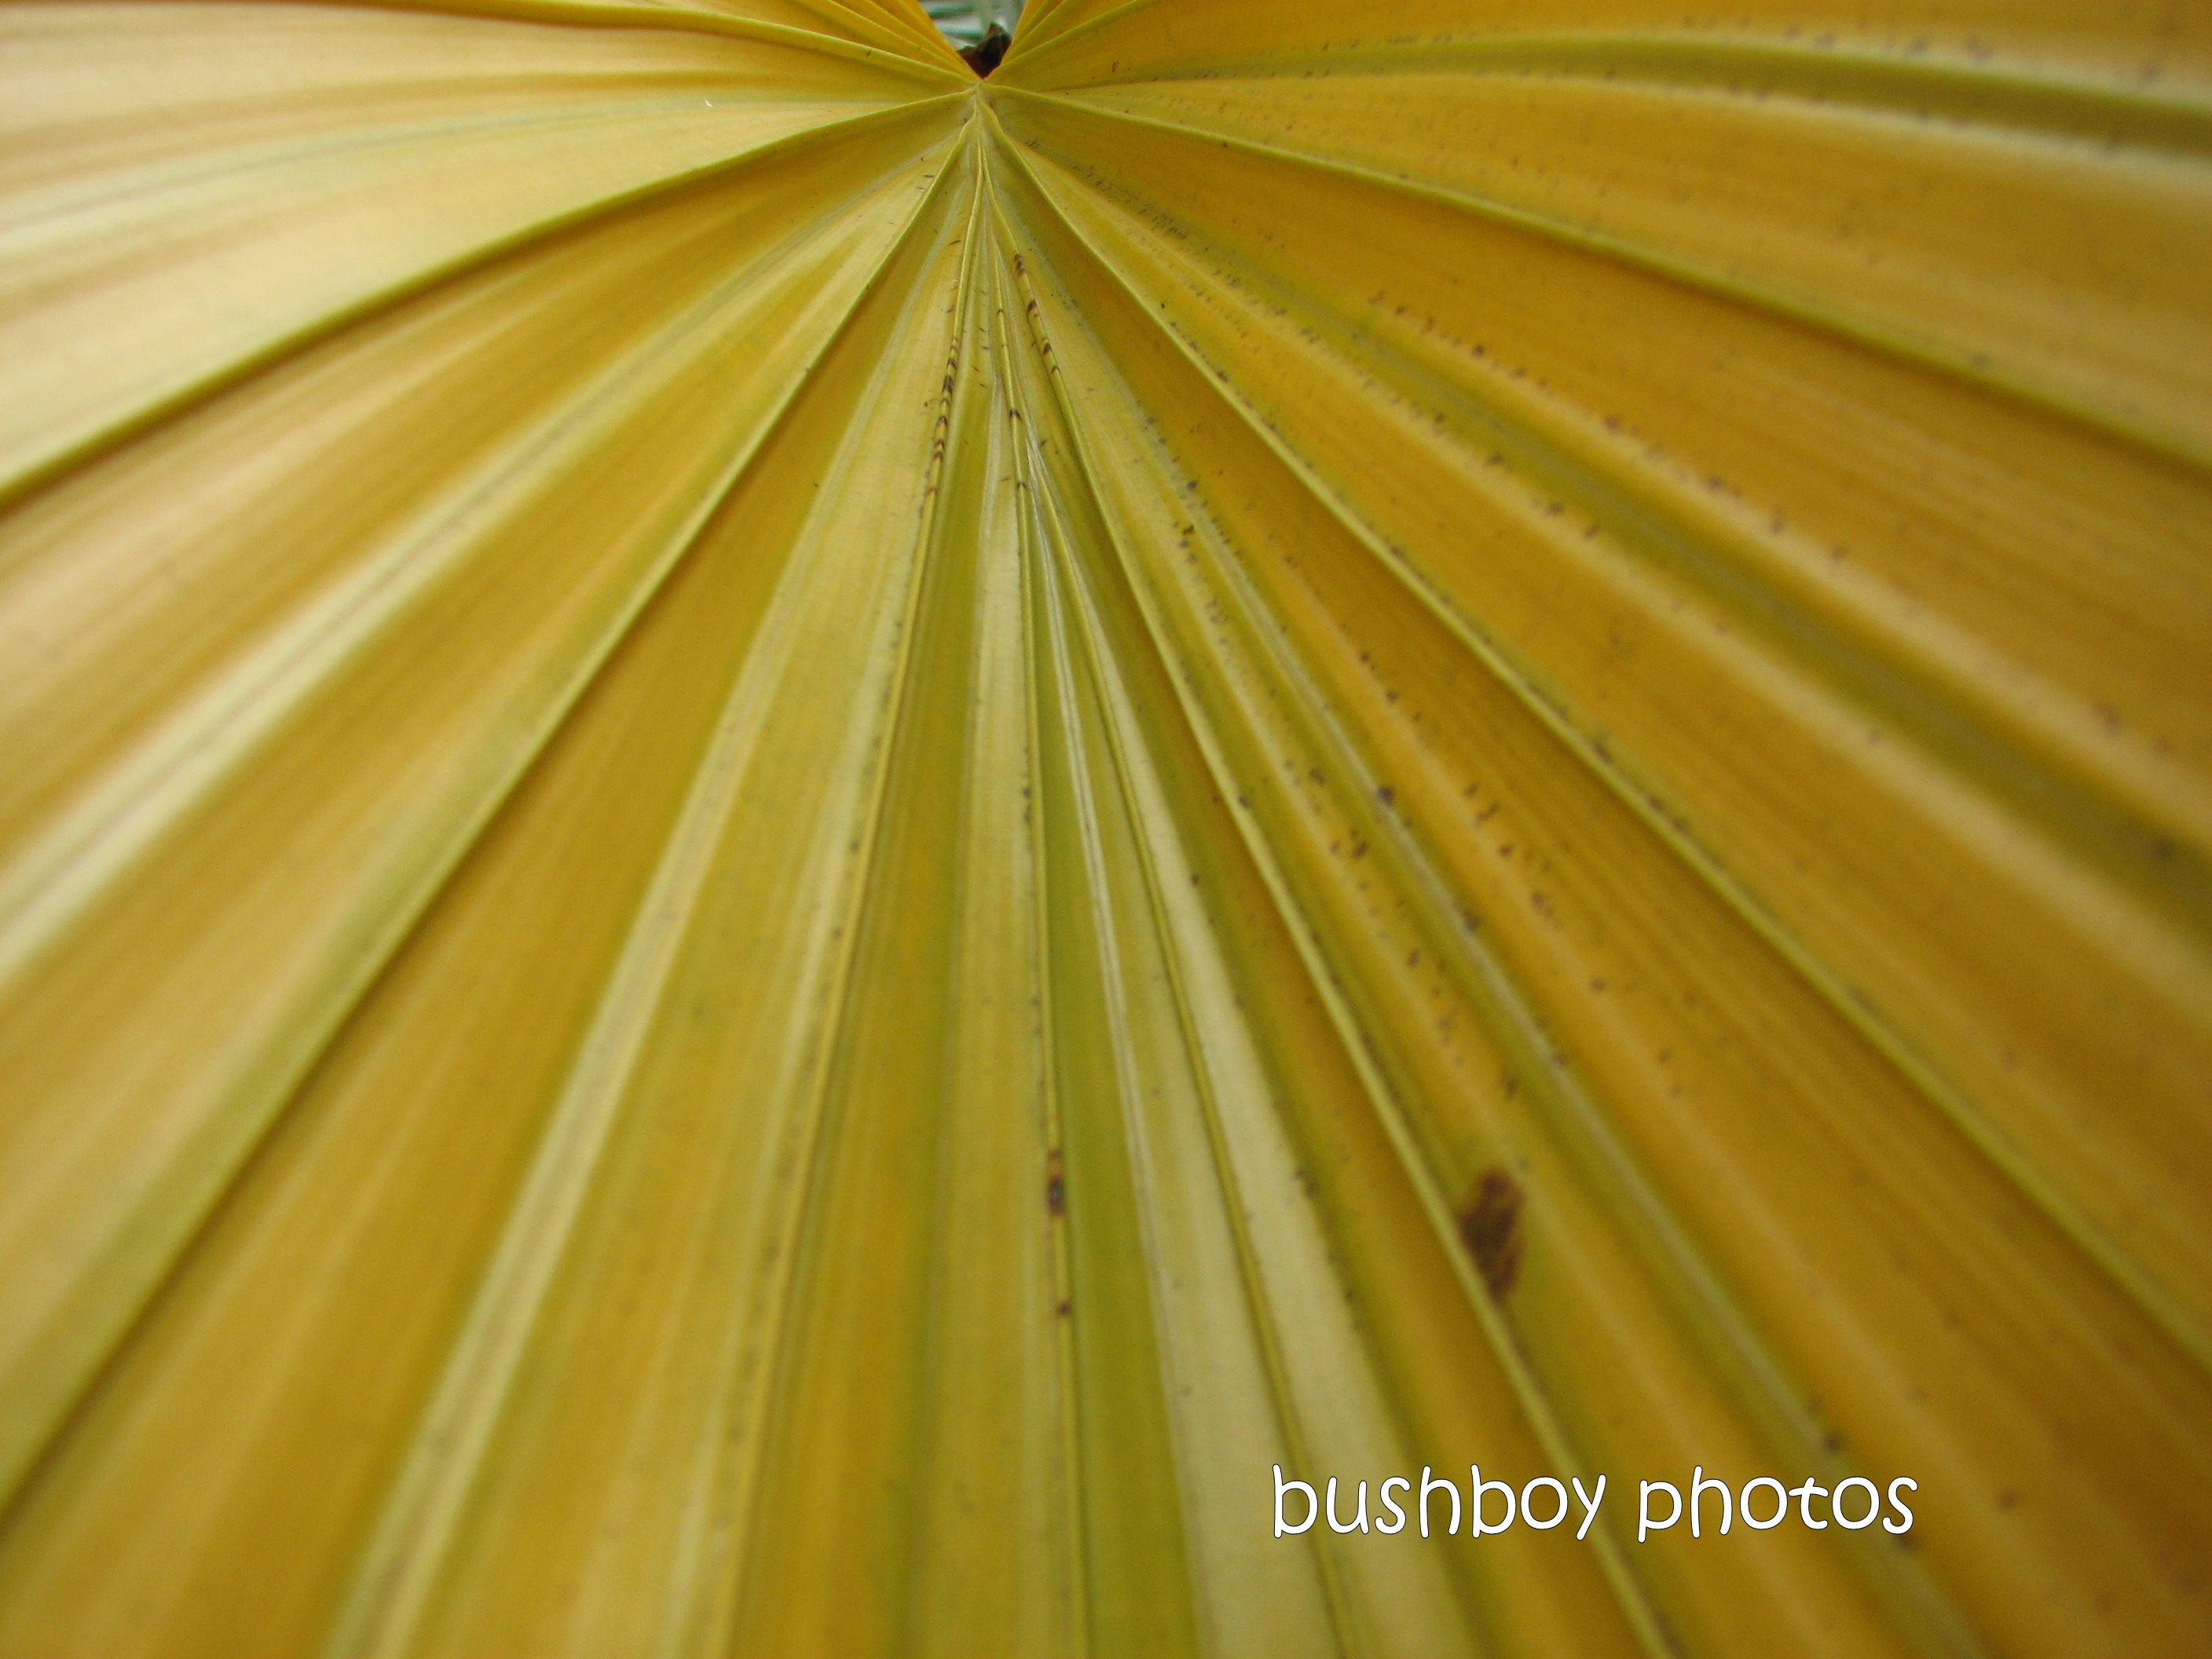 fern leaf_yellow2_home_named_jan 2012